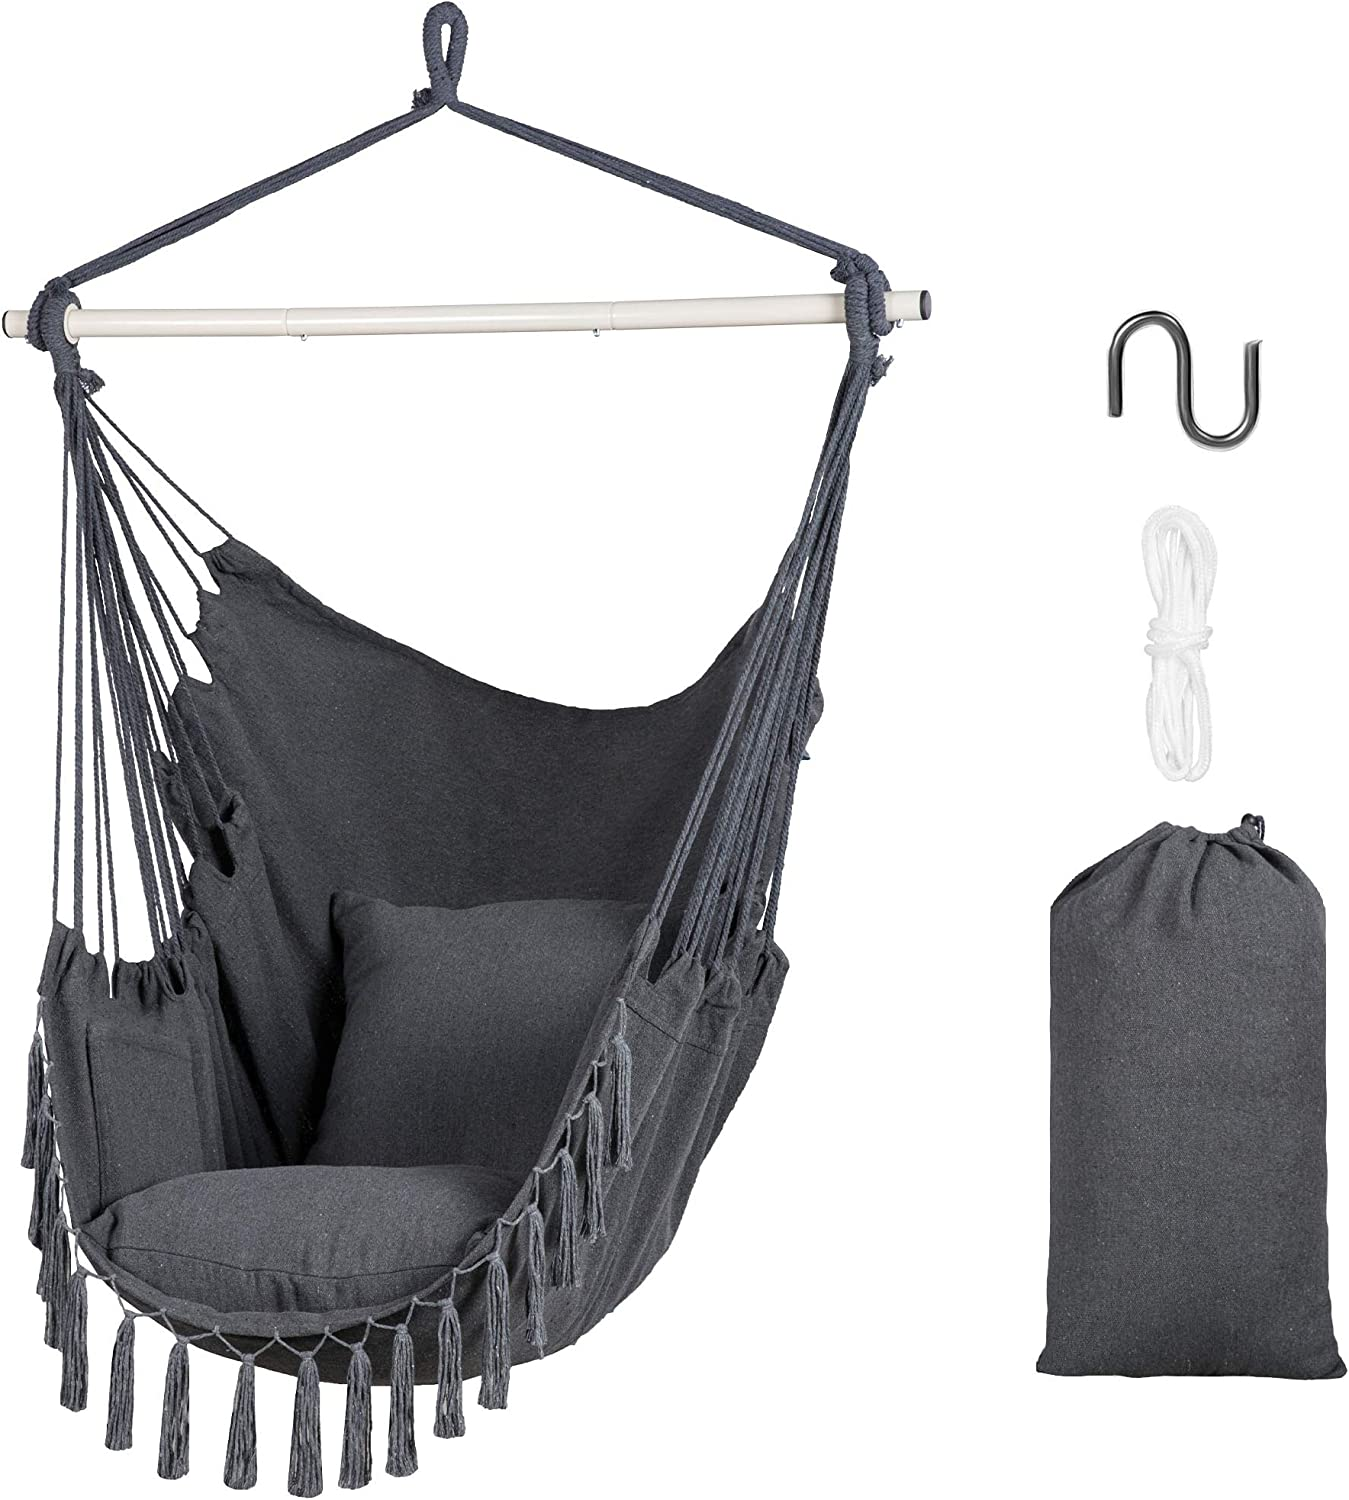 SUNCREAT Hammock Chairs Hammock Chair Swing with Steel Support Bar, Side Pocket, Large Swing Chair for Bedroom, Patio, Garden, Grey